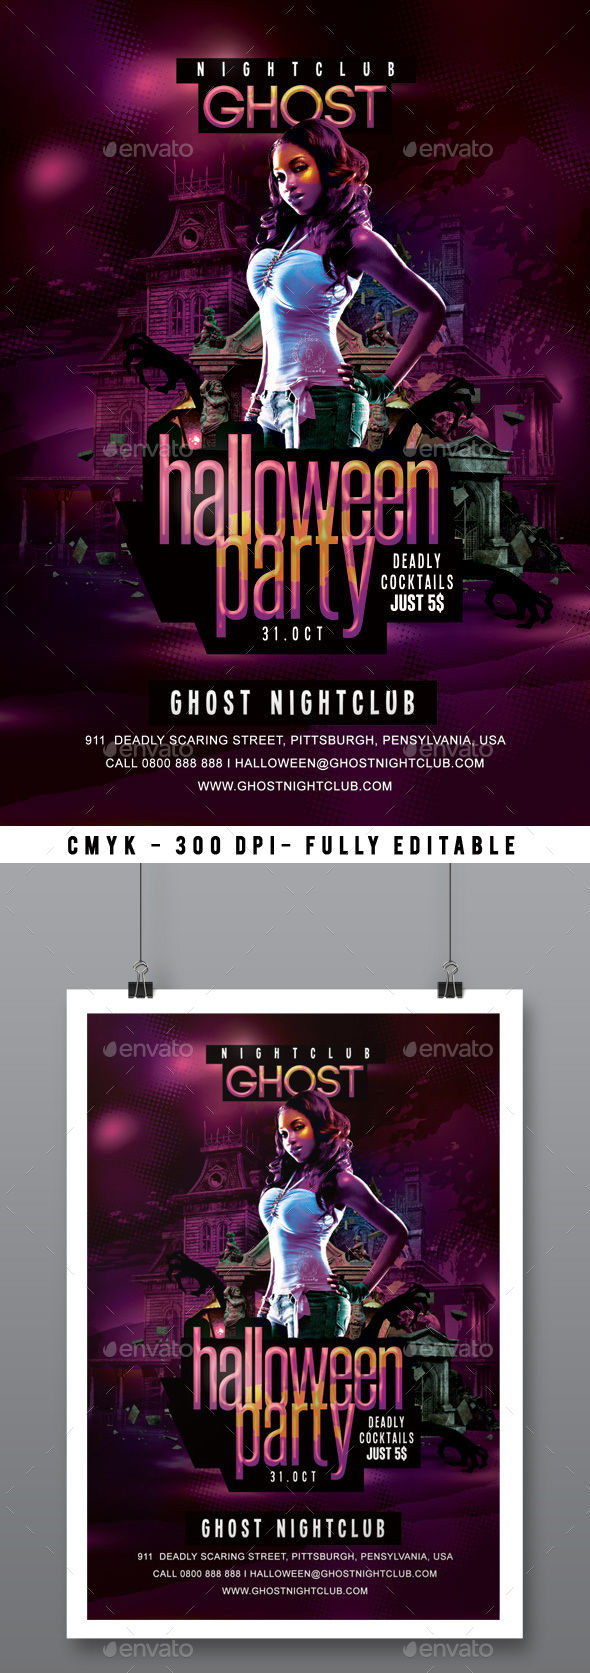 Halloween Party by N2n44 (Halloween party flyer)